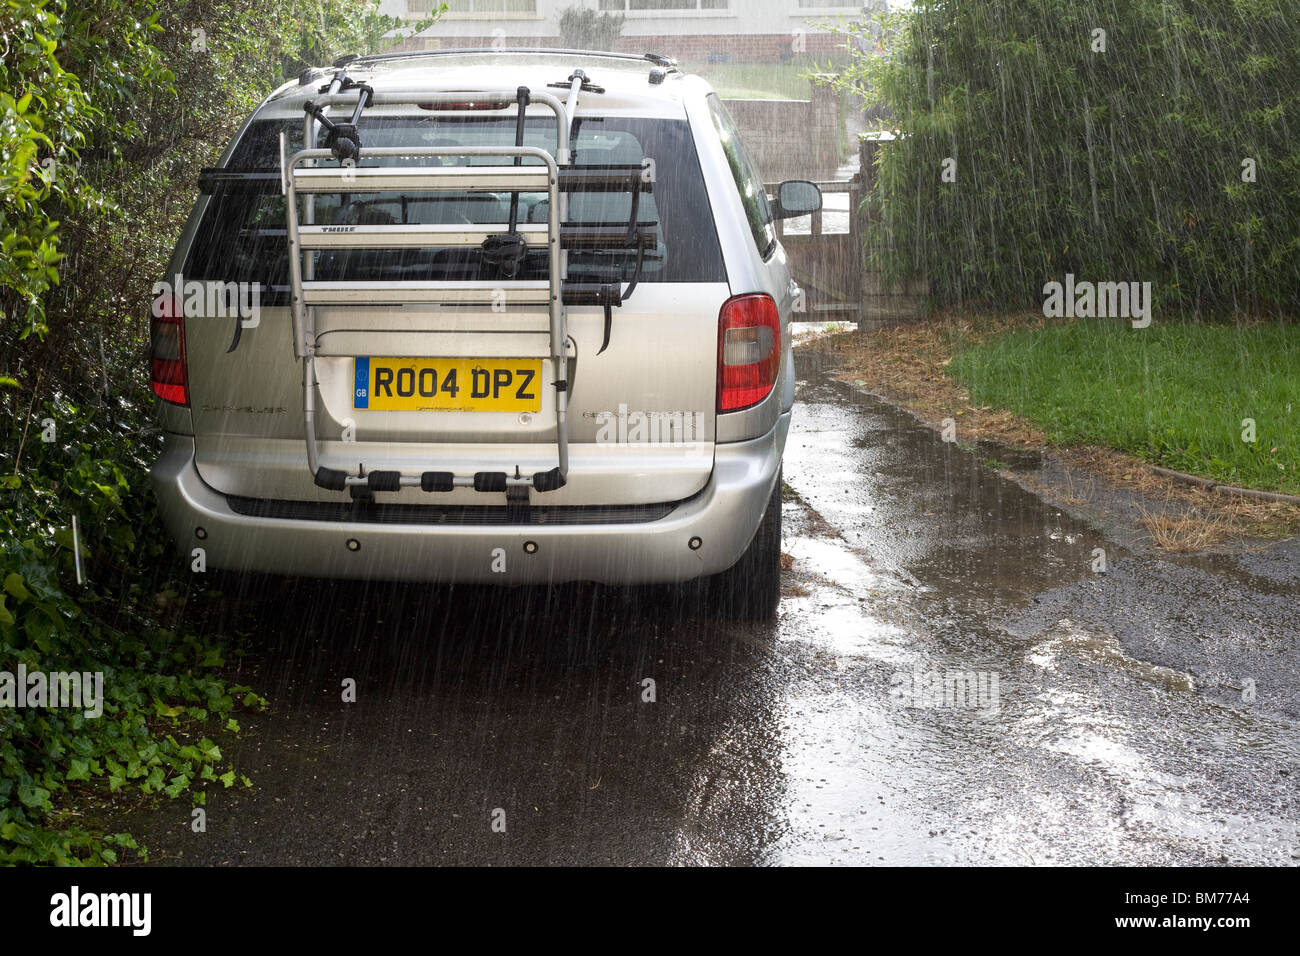 A torrential rain shower falls on a Chrysler Grand voyager sitting on its owners drive - Stock Image